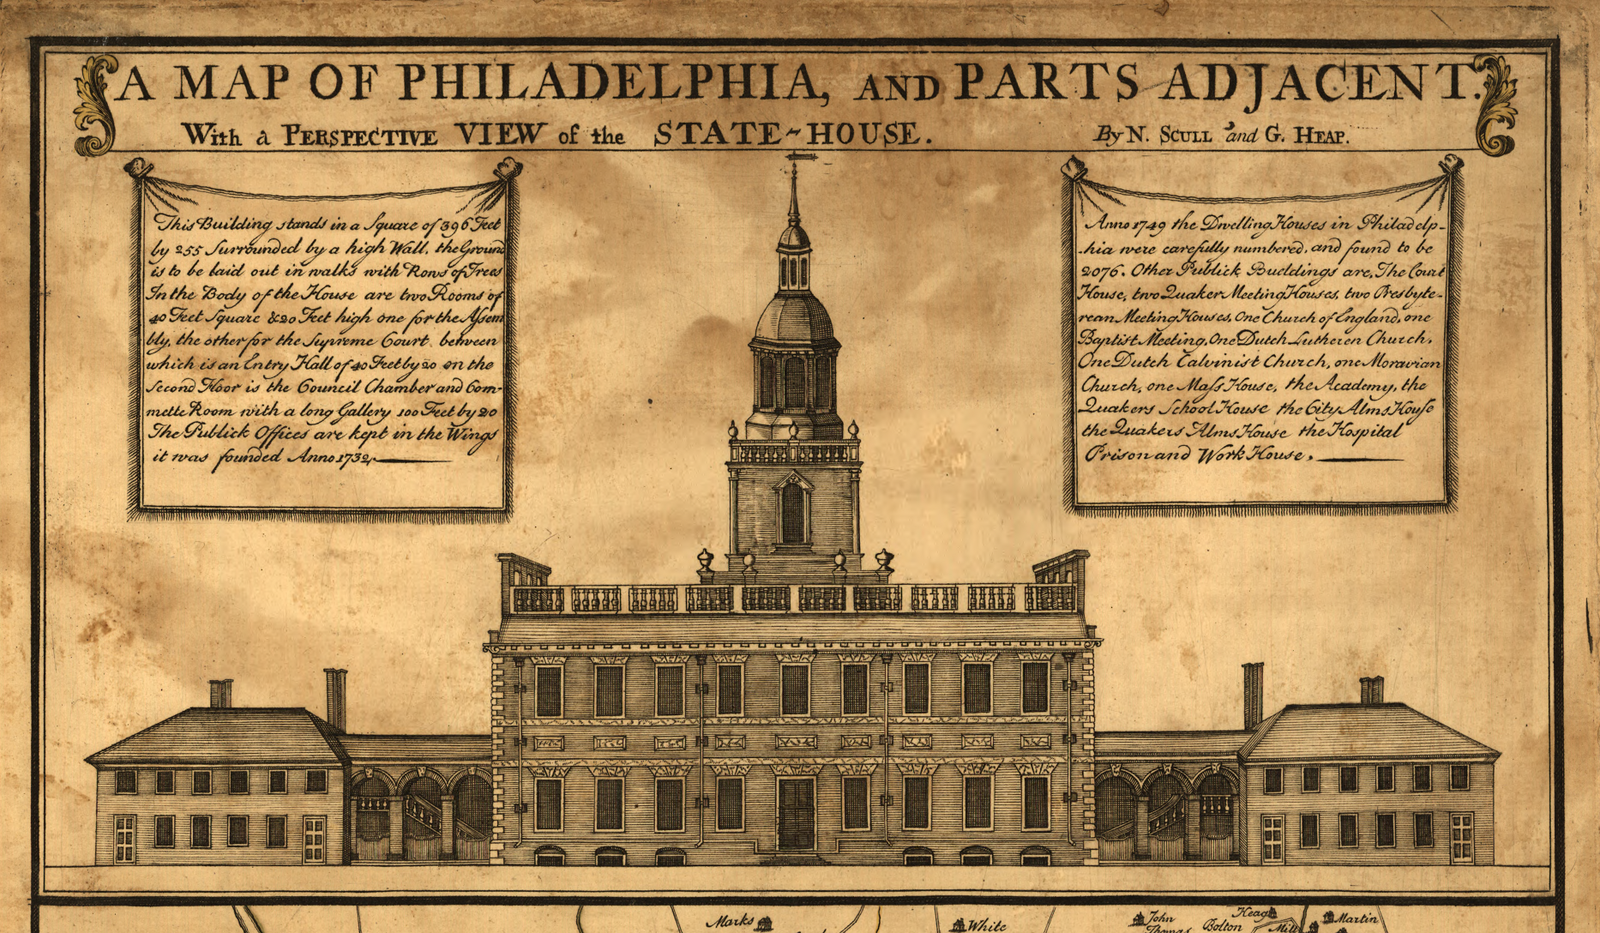 A Brief History of Early Philadelphia